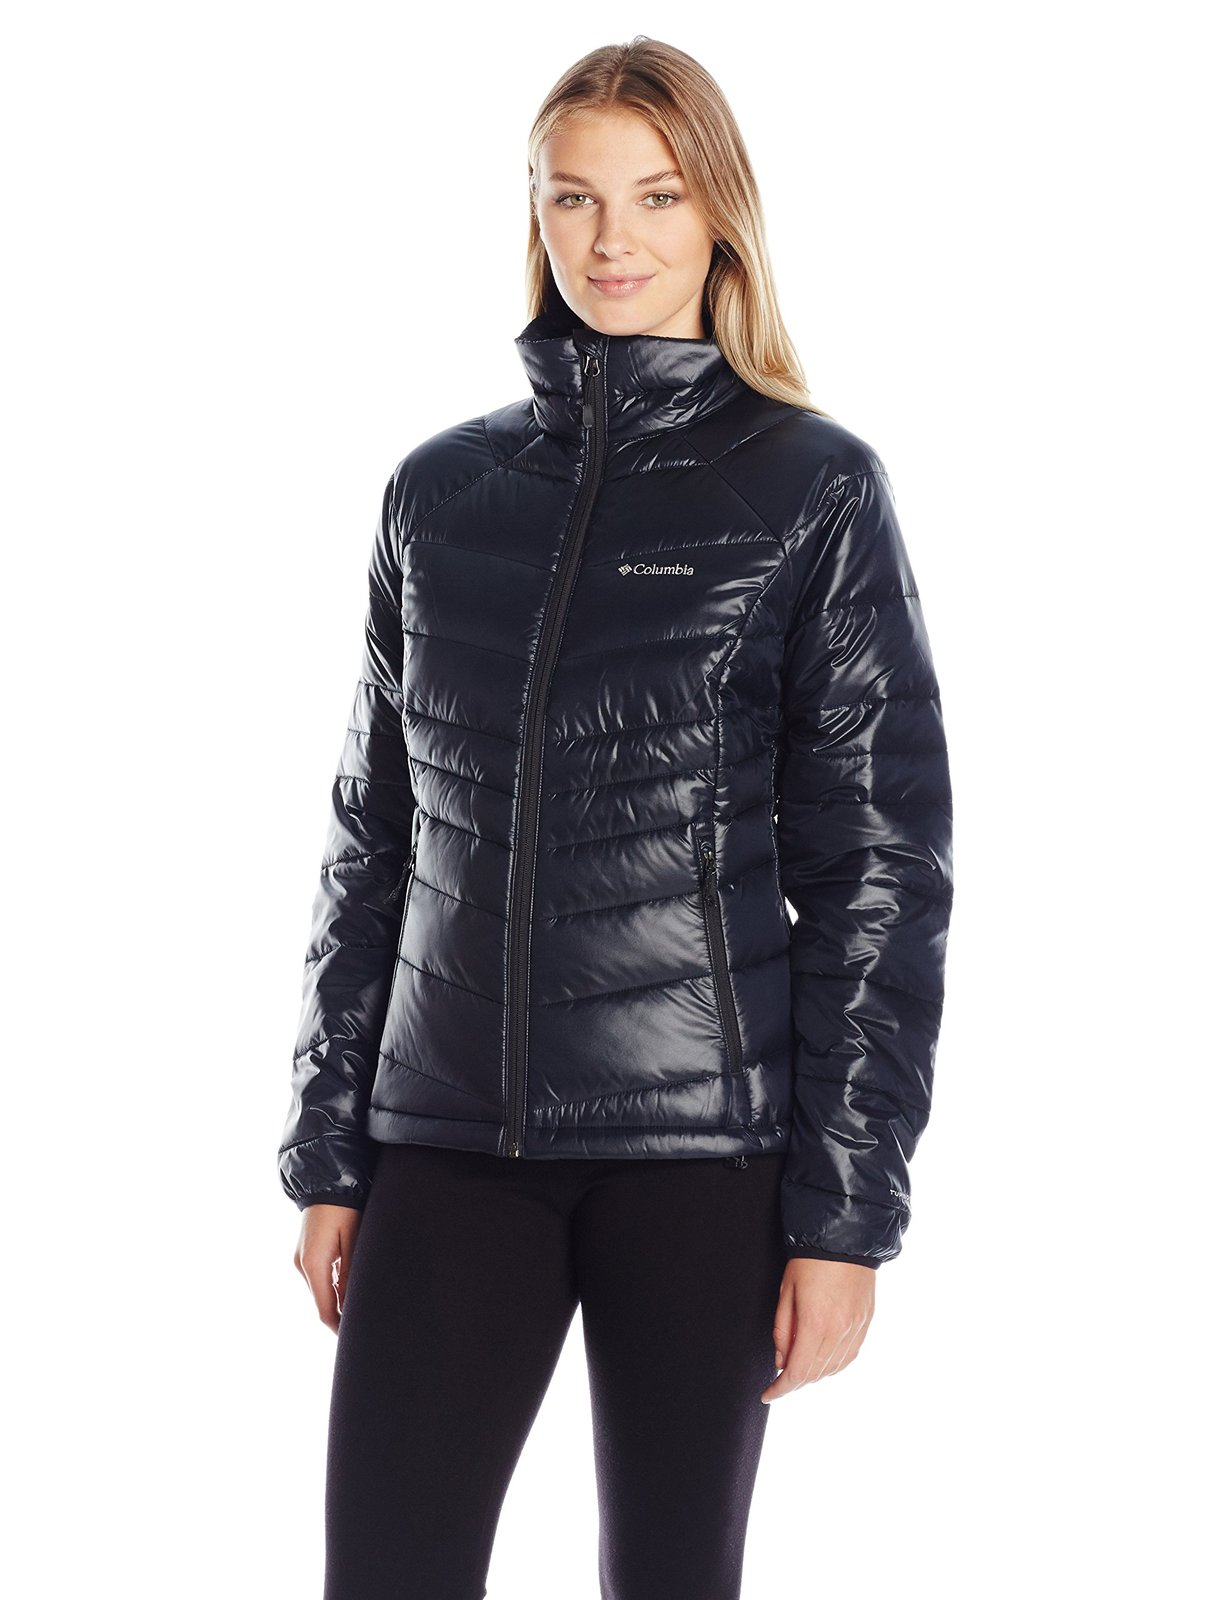 Columbia Women's Gold 650 TurboDown Radial Down Jacket, X-Small, Black